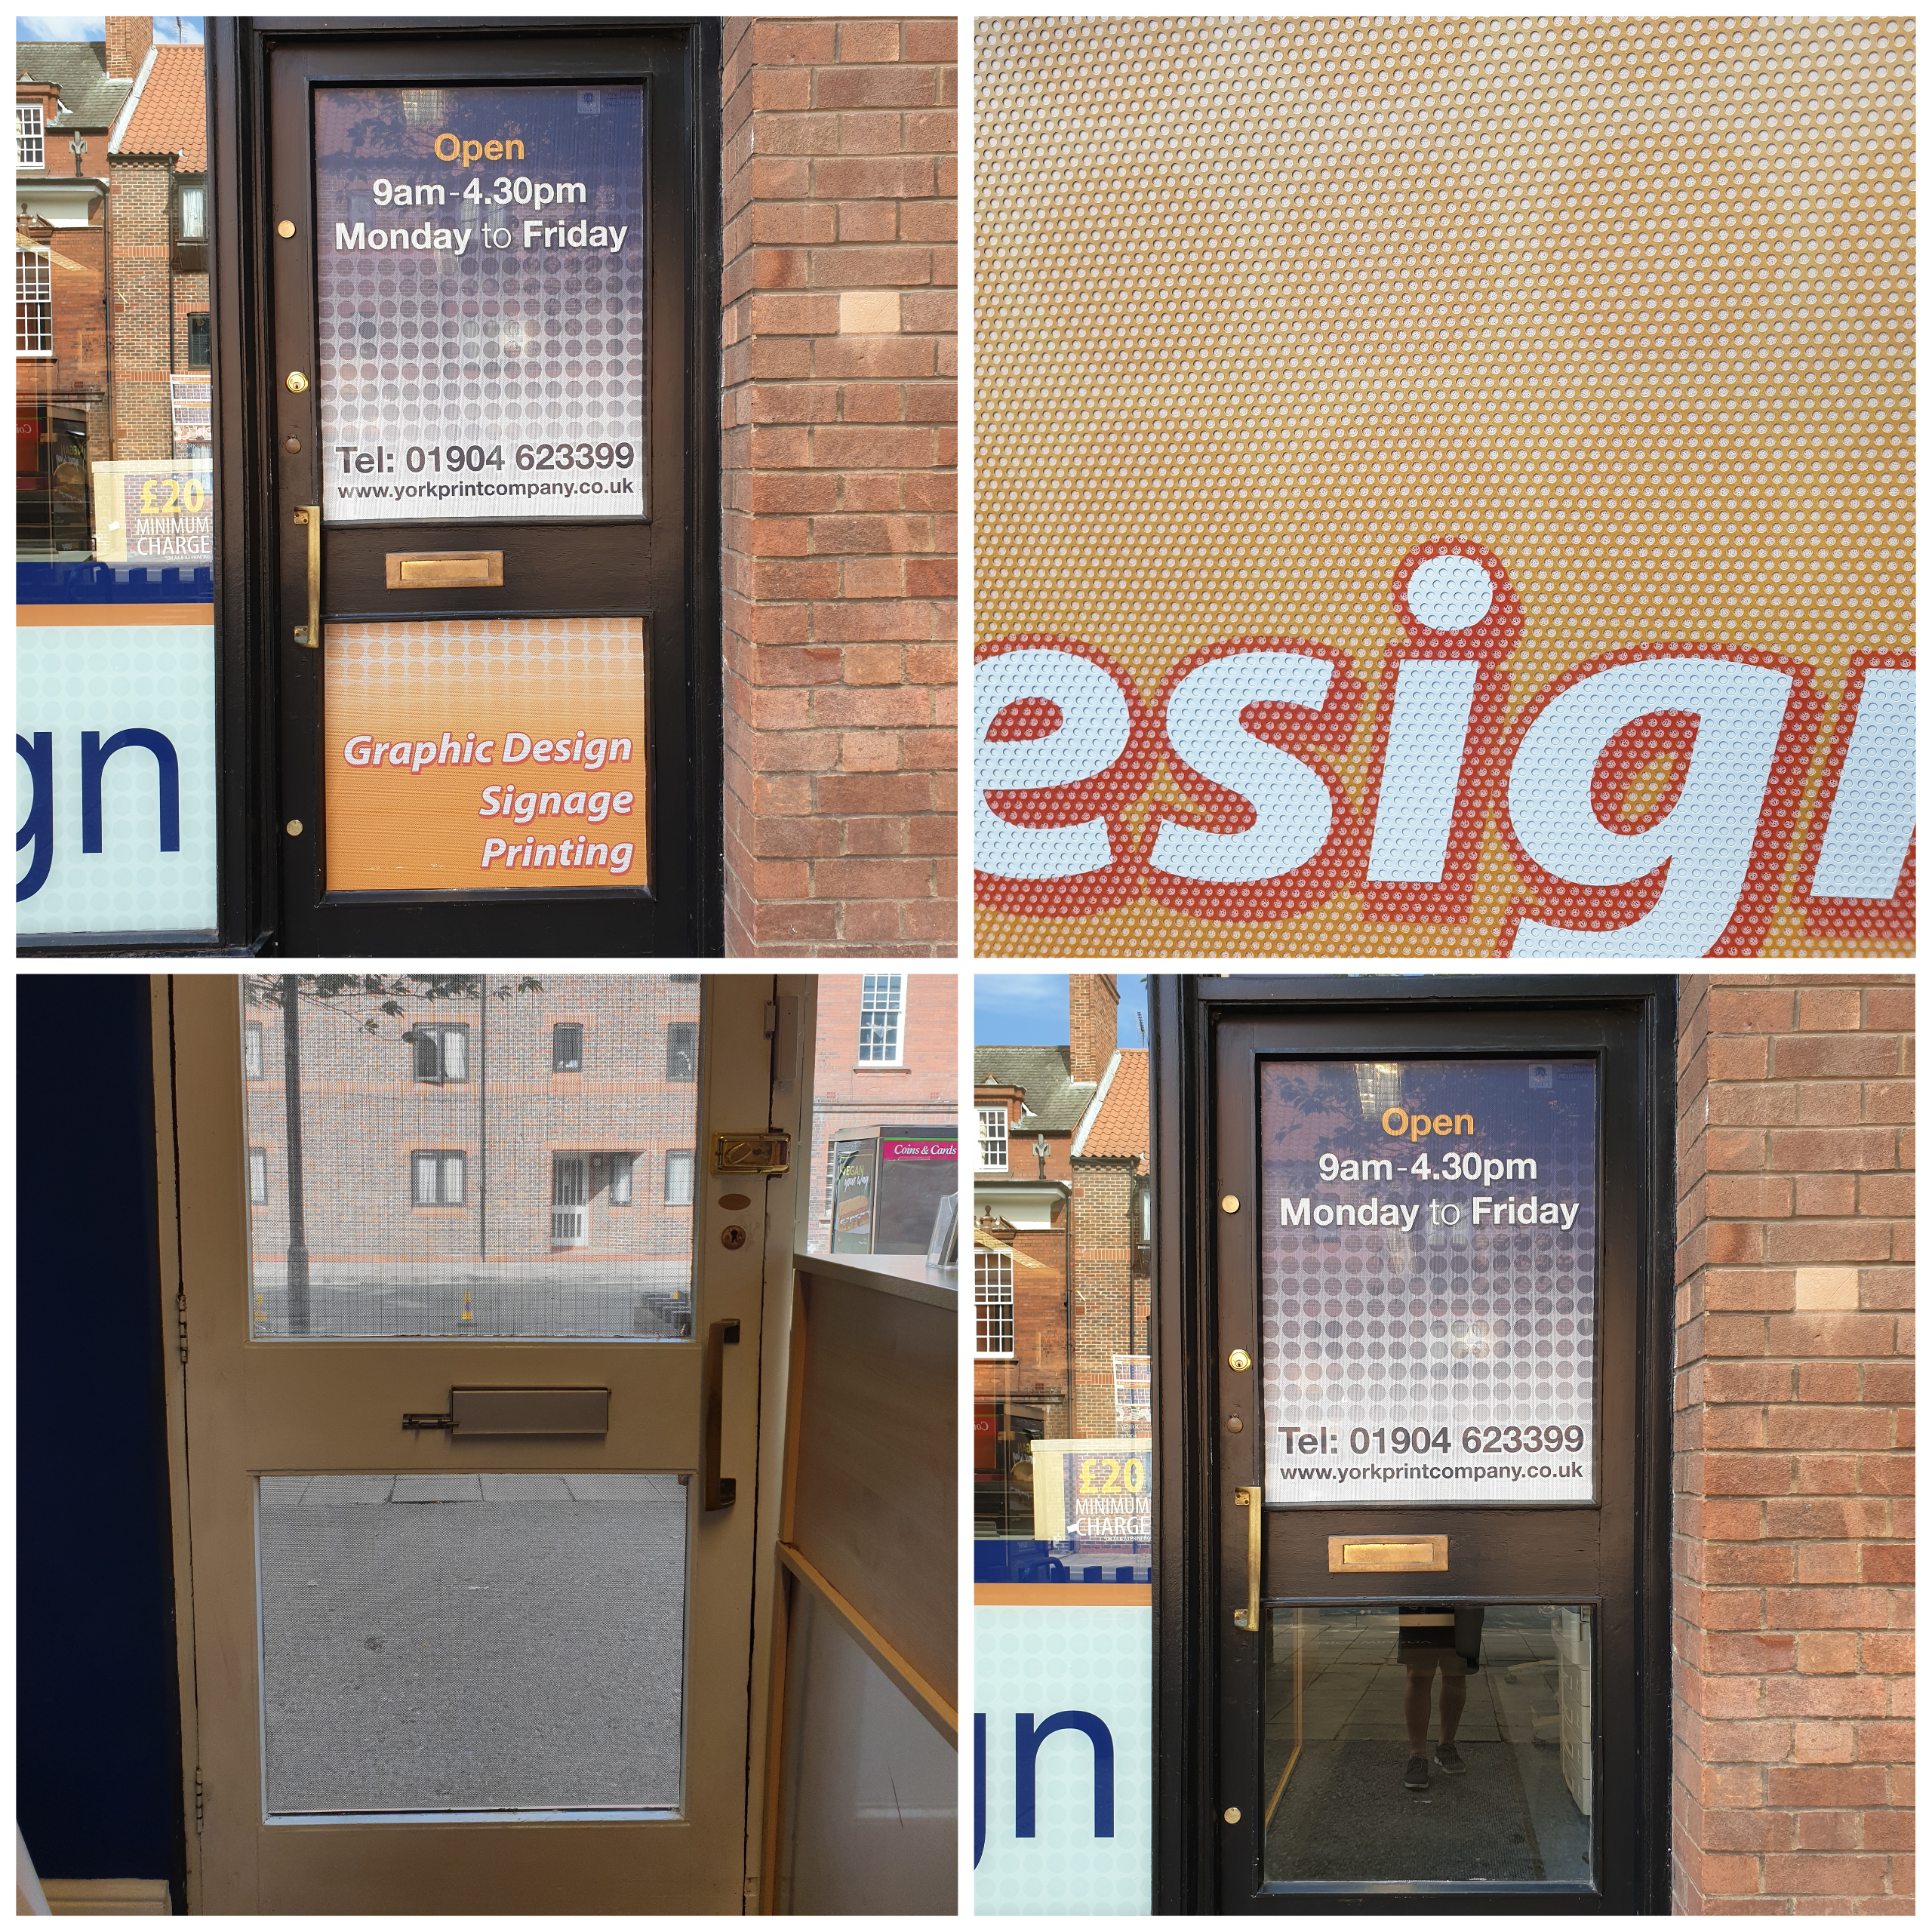 One way window graphics – Contra Vision®